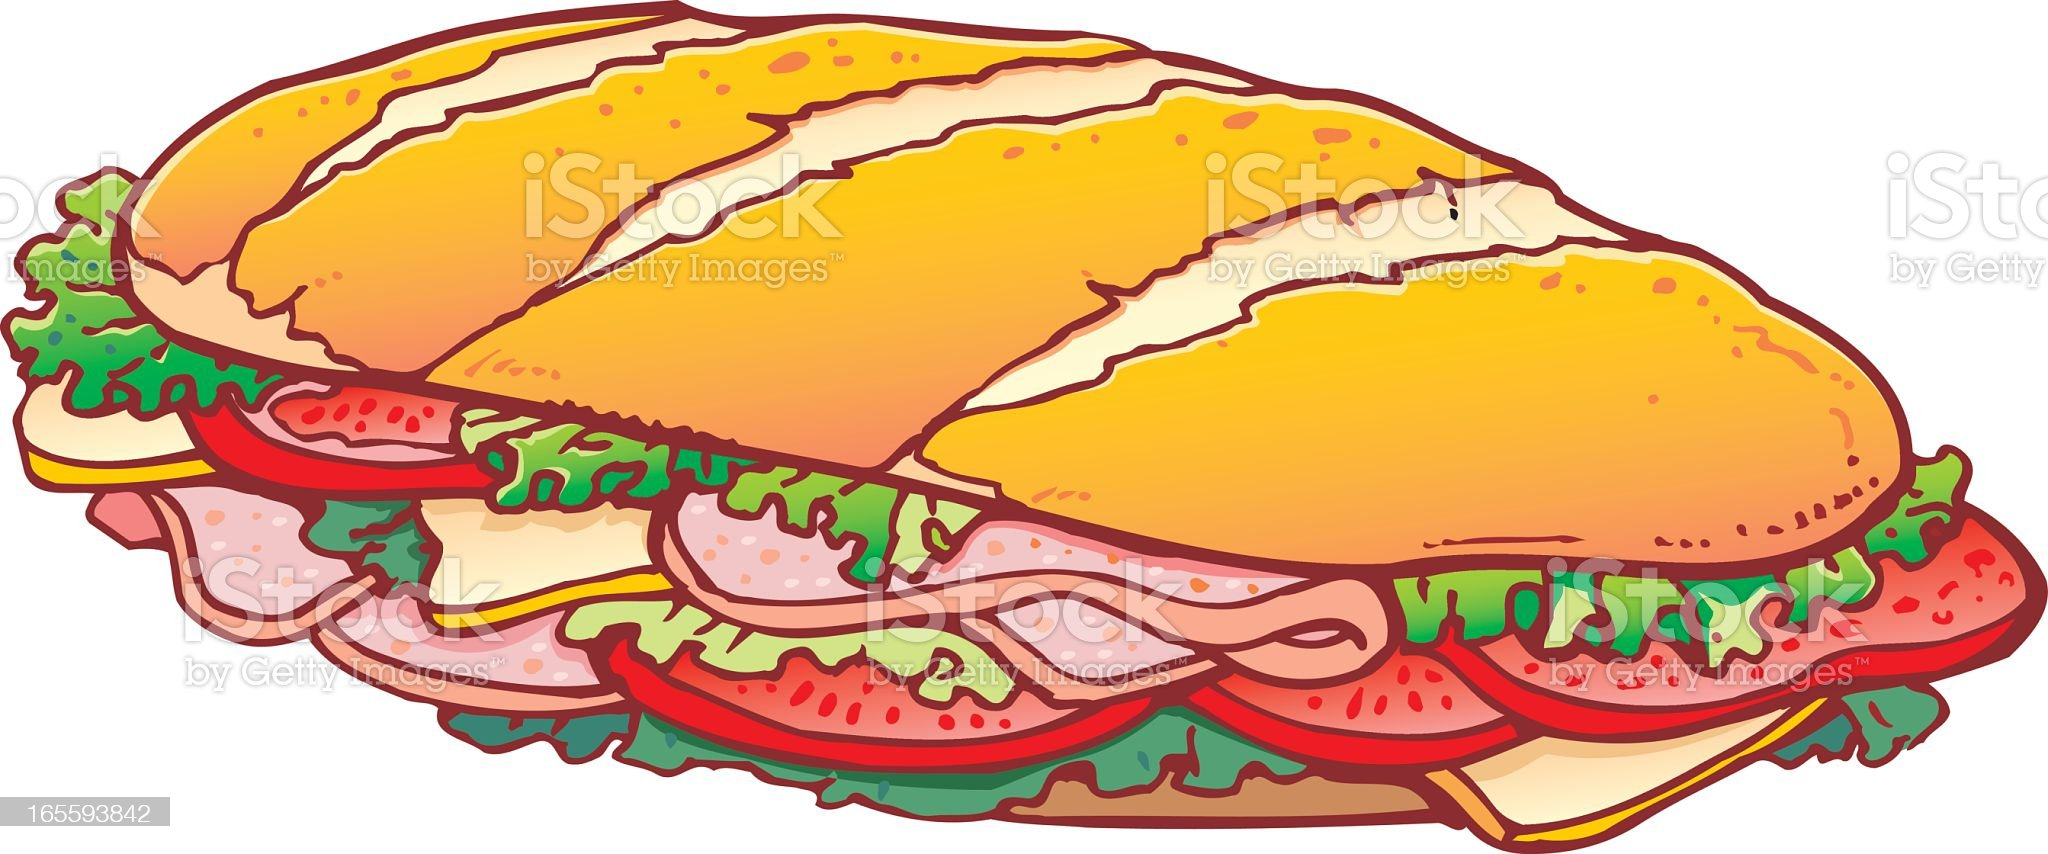 Illustration of sub sandwich with meat and lettuce royalty-free stock vector art